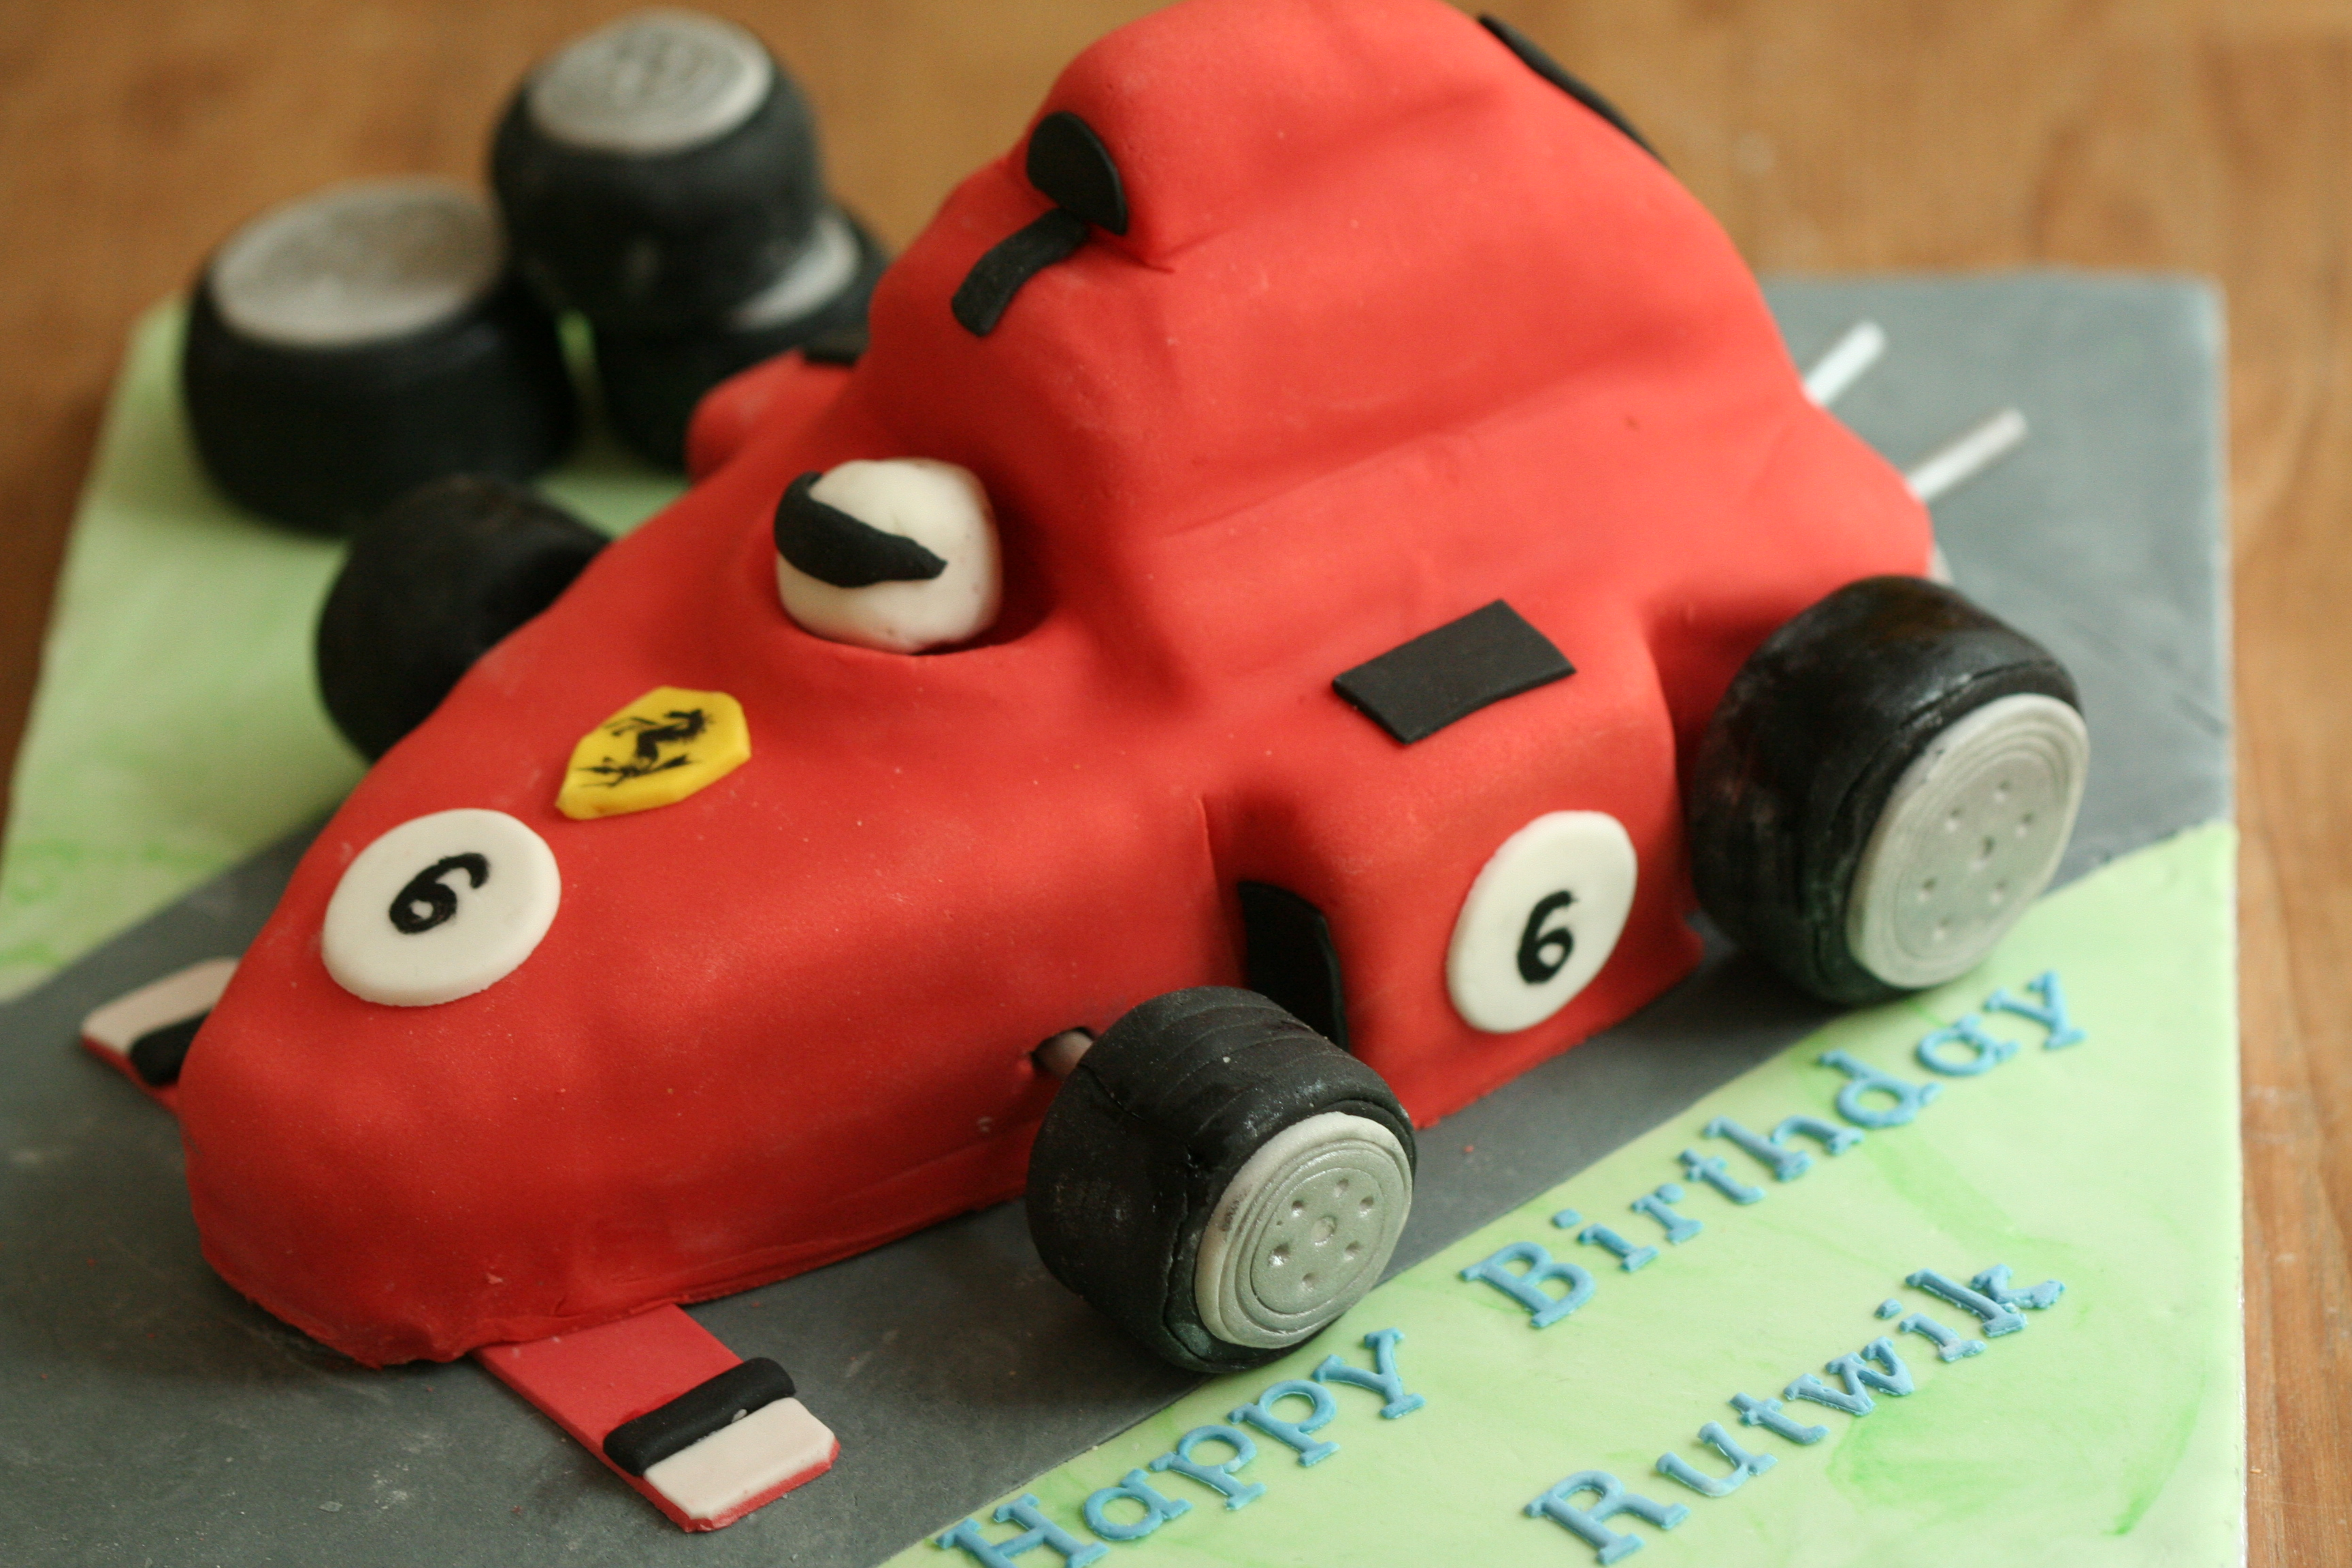 f1 car cake template - racing car cake cakes desserts and more